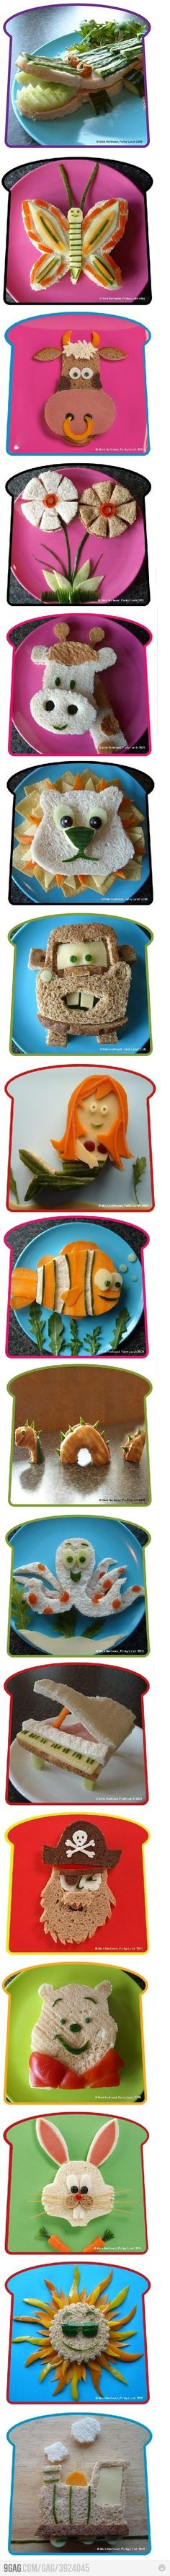 Fun & Funny Sandwiches